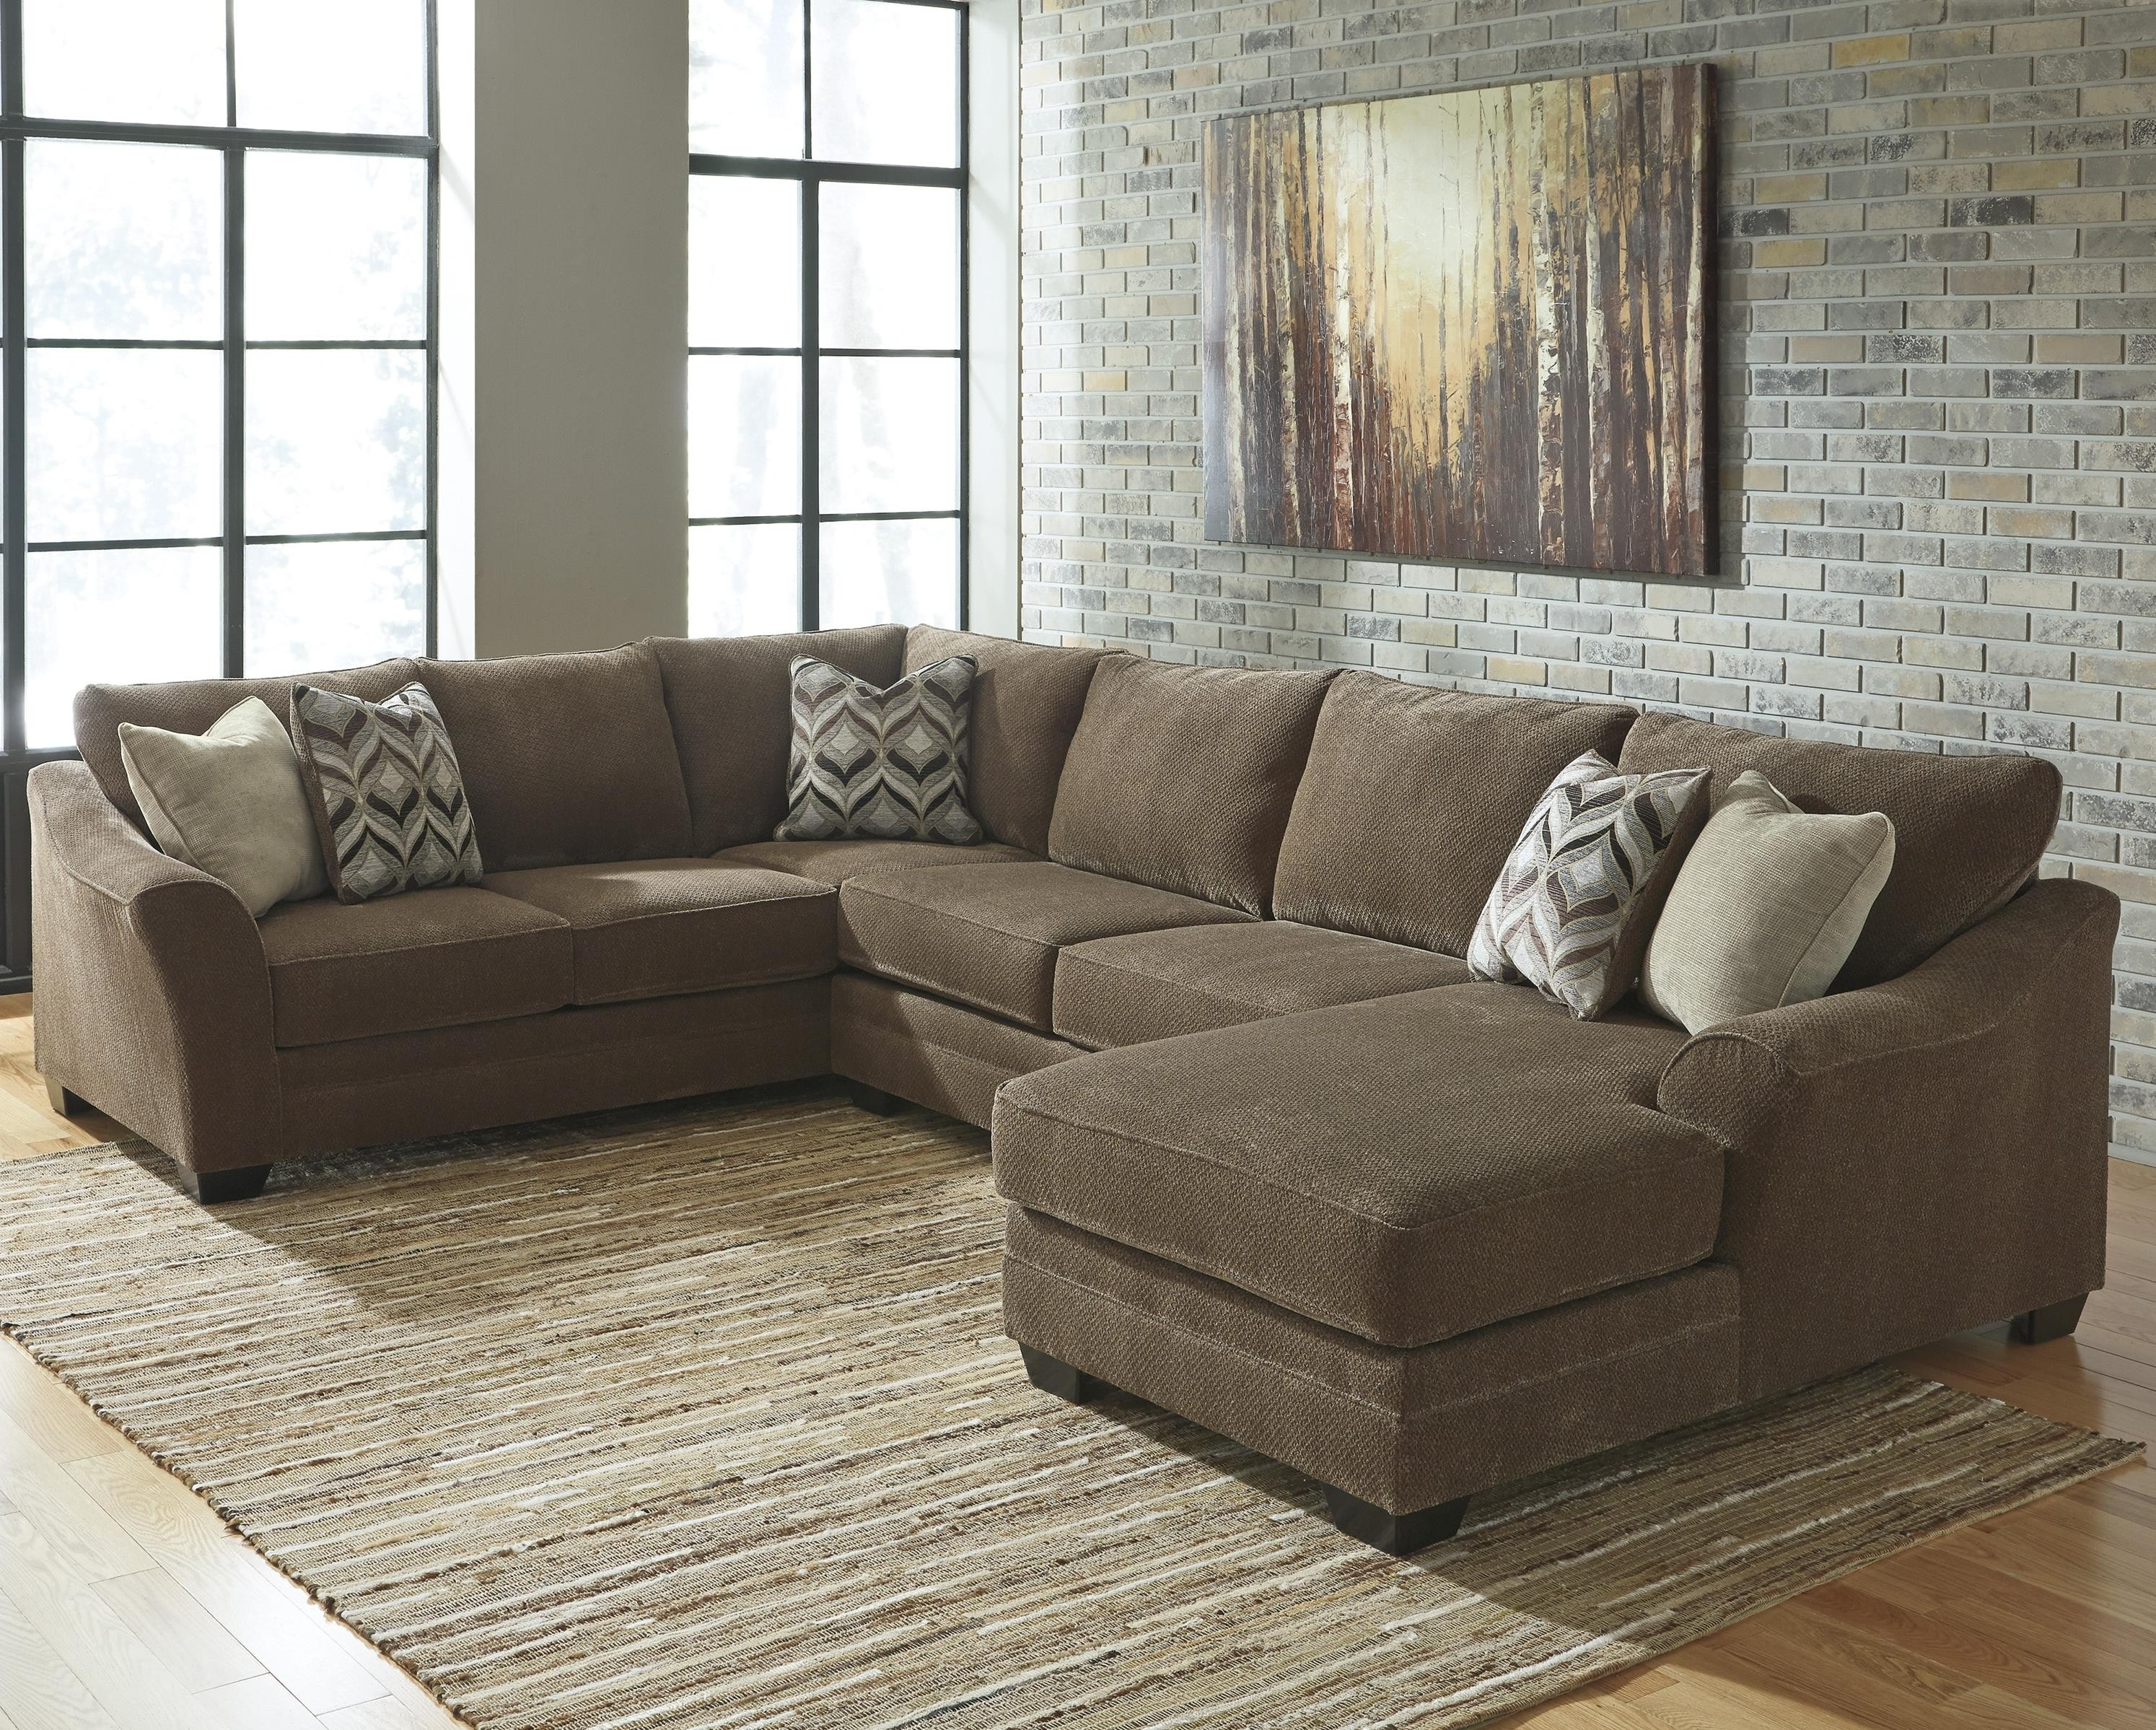 3 Piece Sectional Malbry Point W Laf Chaise Living Spaces 223533 0 for Malbry Point 3 Piece Sectionals With Raf Chaise